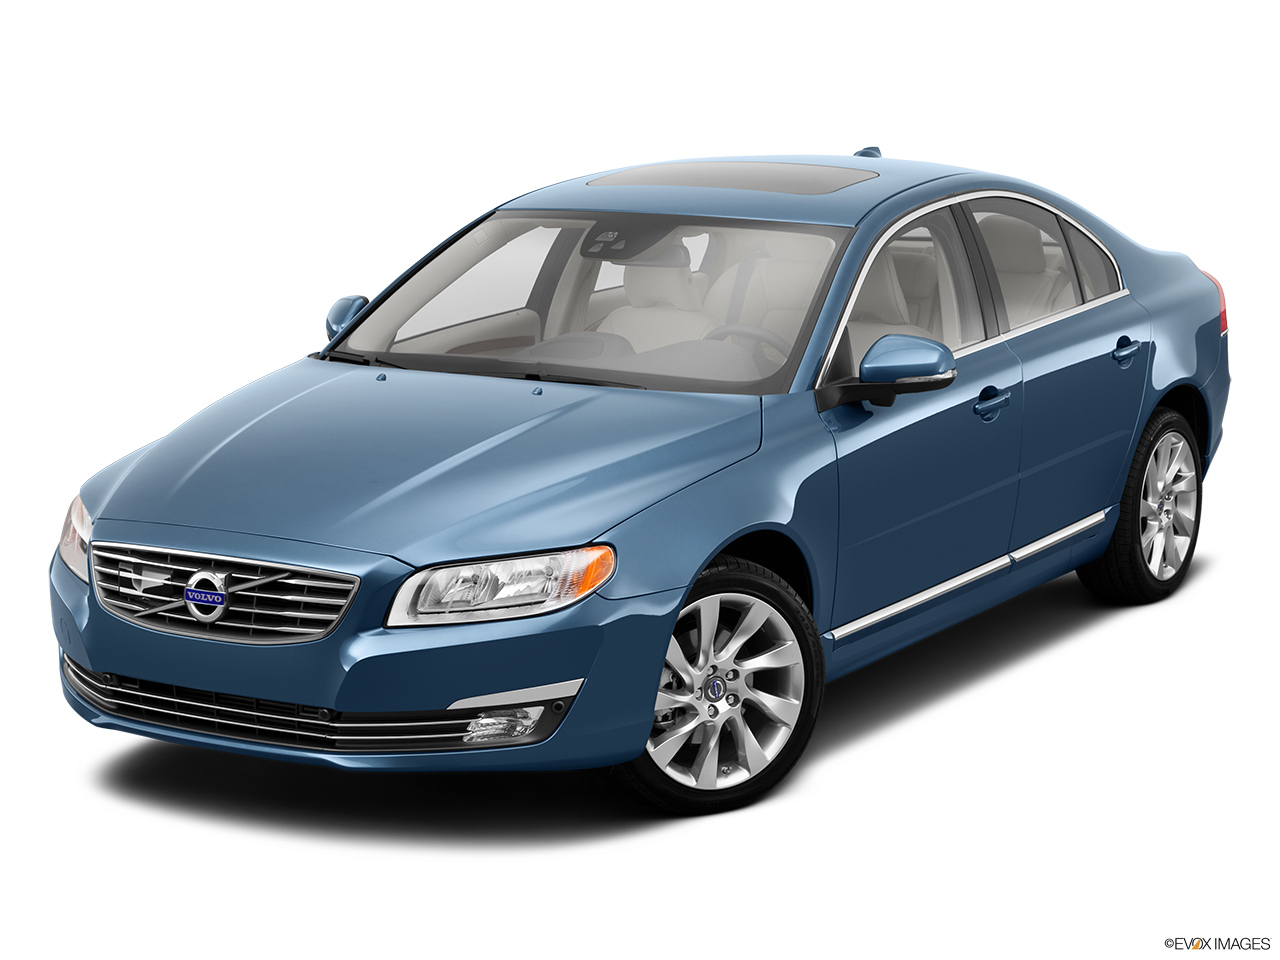 2014 Volvo S80 T6 AWD Platinum Front angle view.